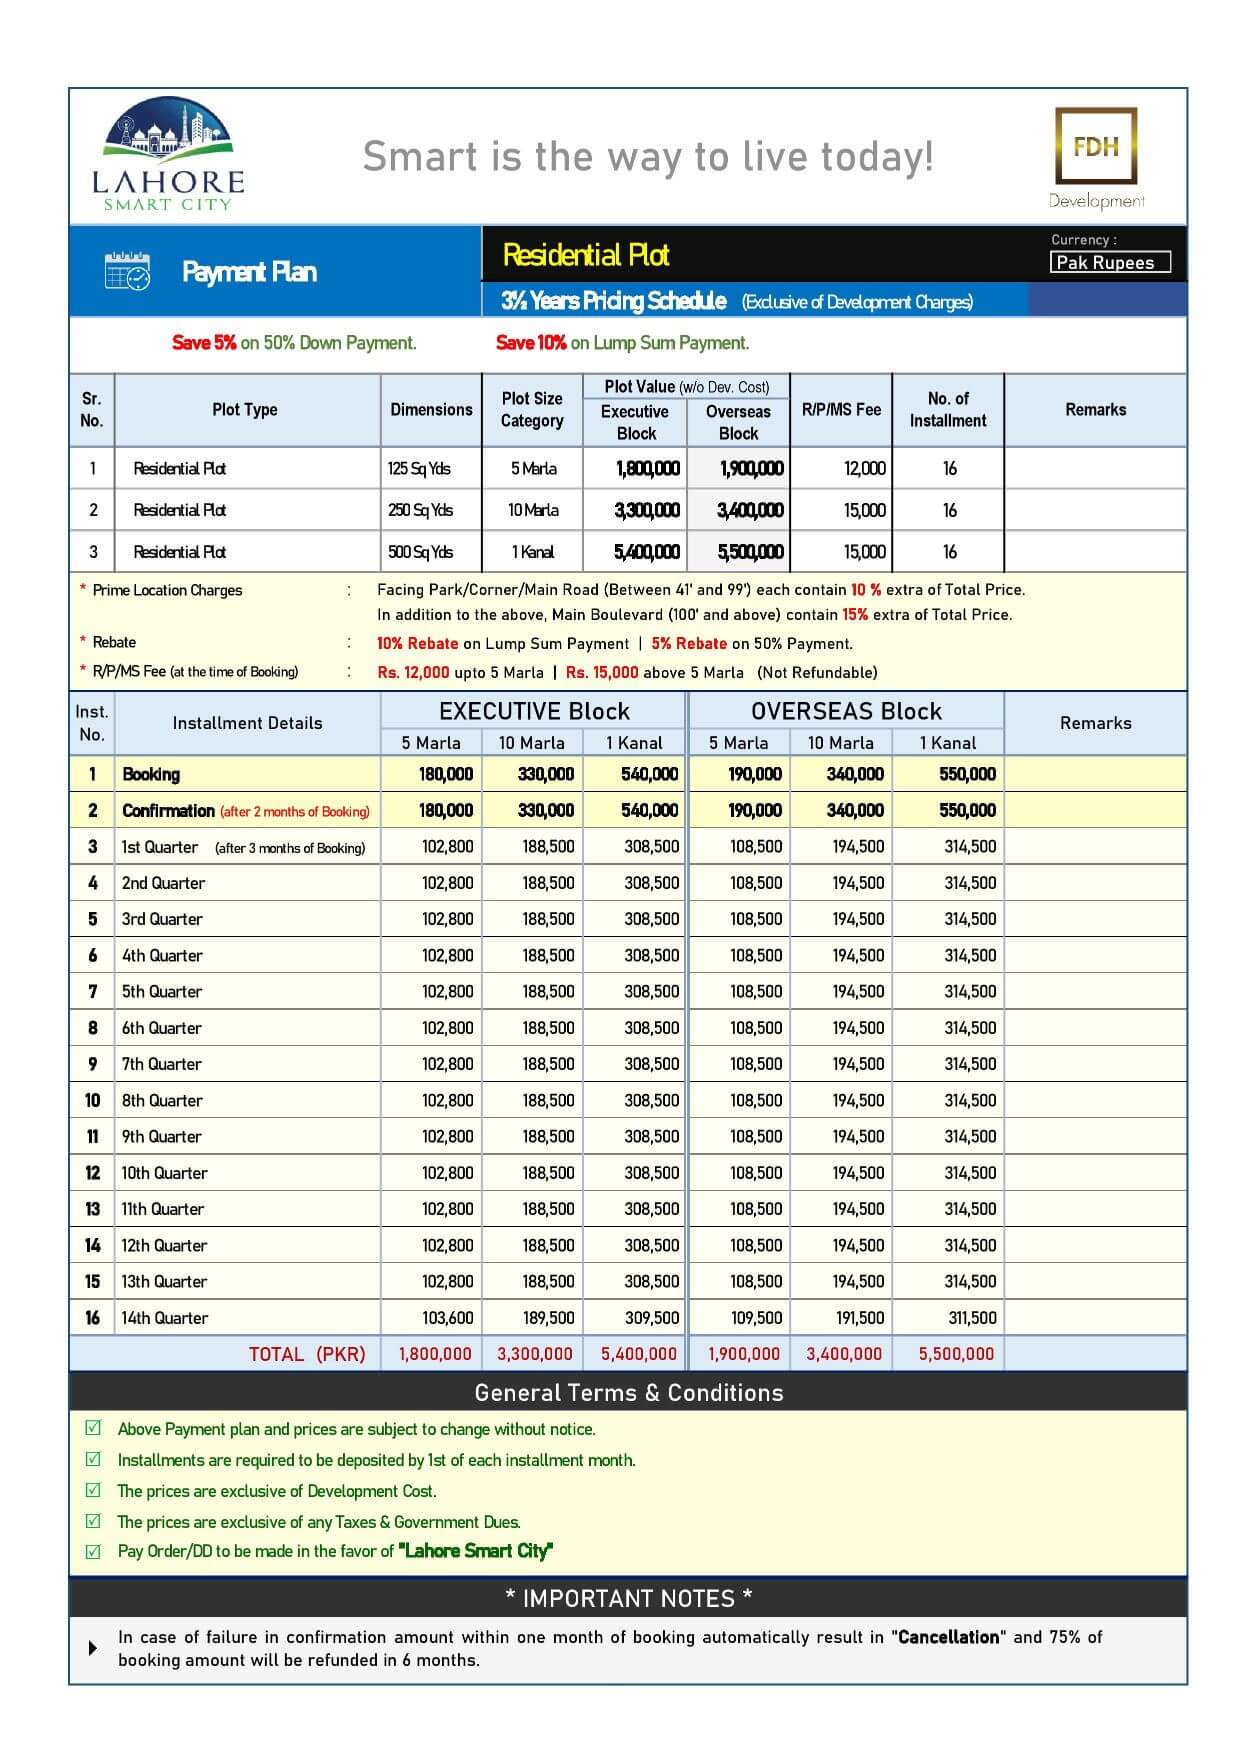 Lahore Smart City Payment Plan Residential